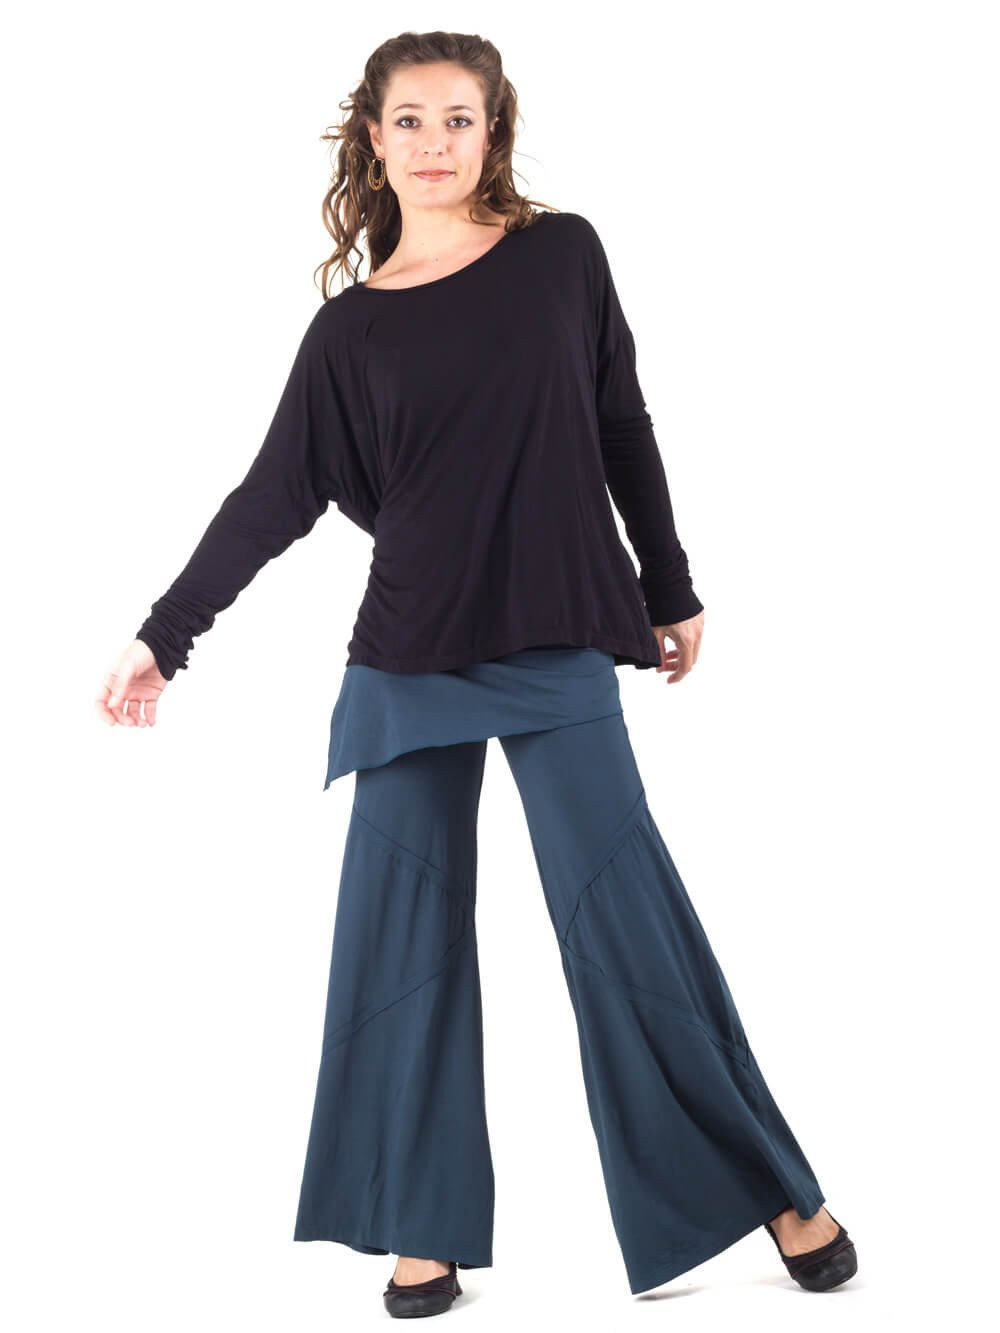 Womens Long Sleeve Rayon Jersey Boyfriend Top in Black with Wide Leg Panel Rayon Jersey Pants in Teal